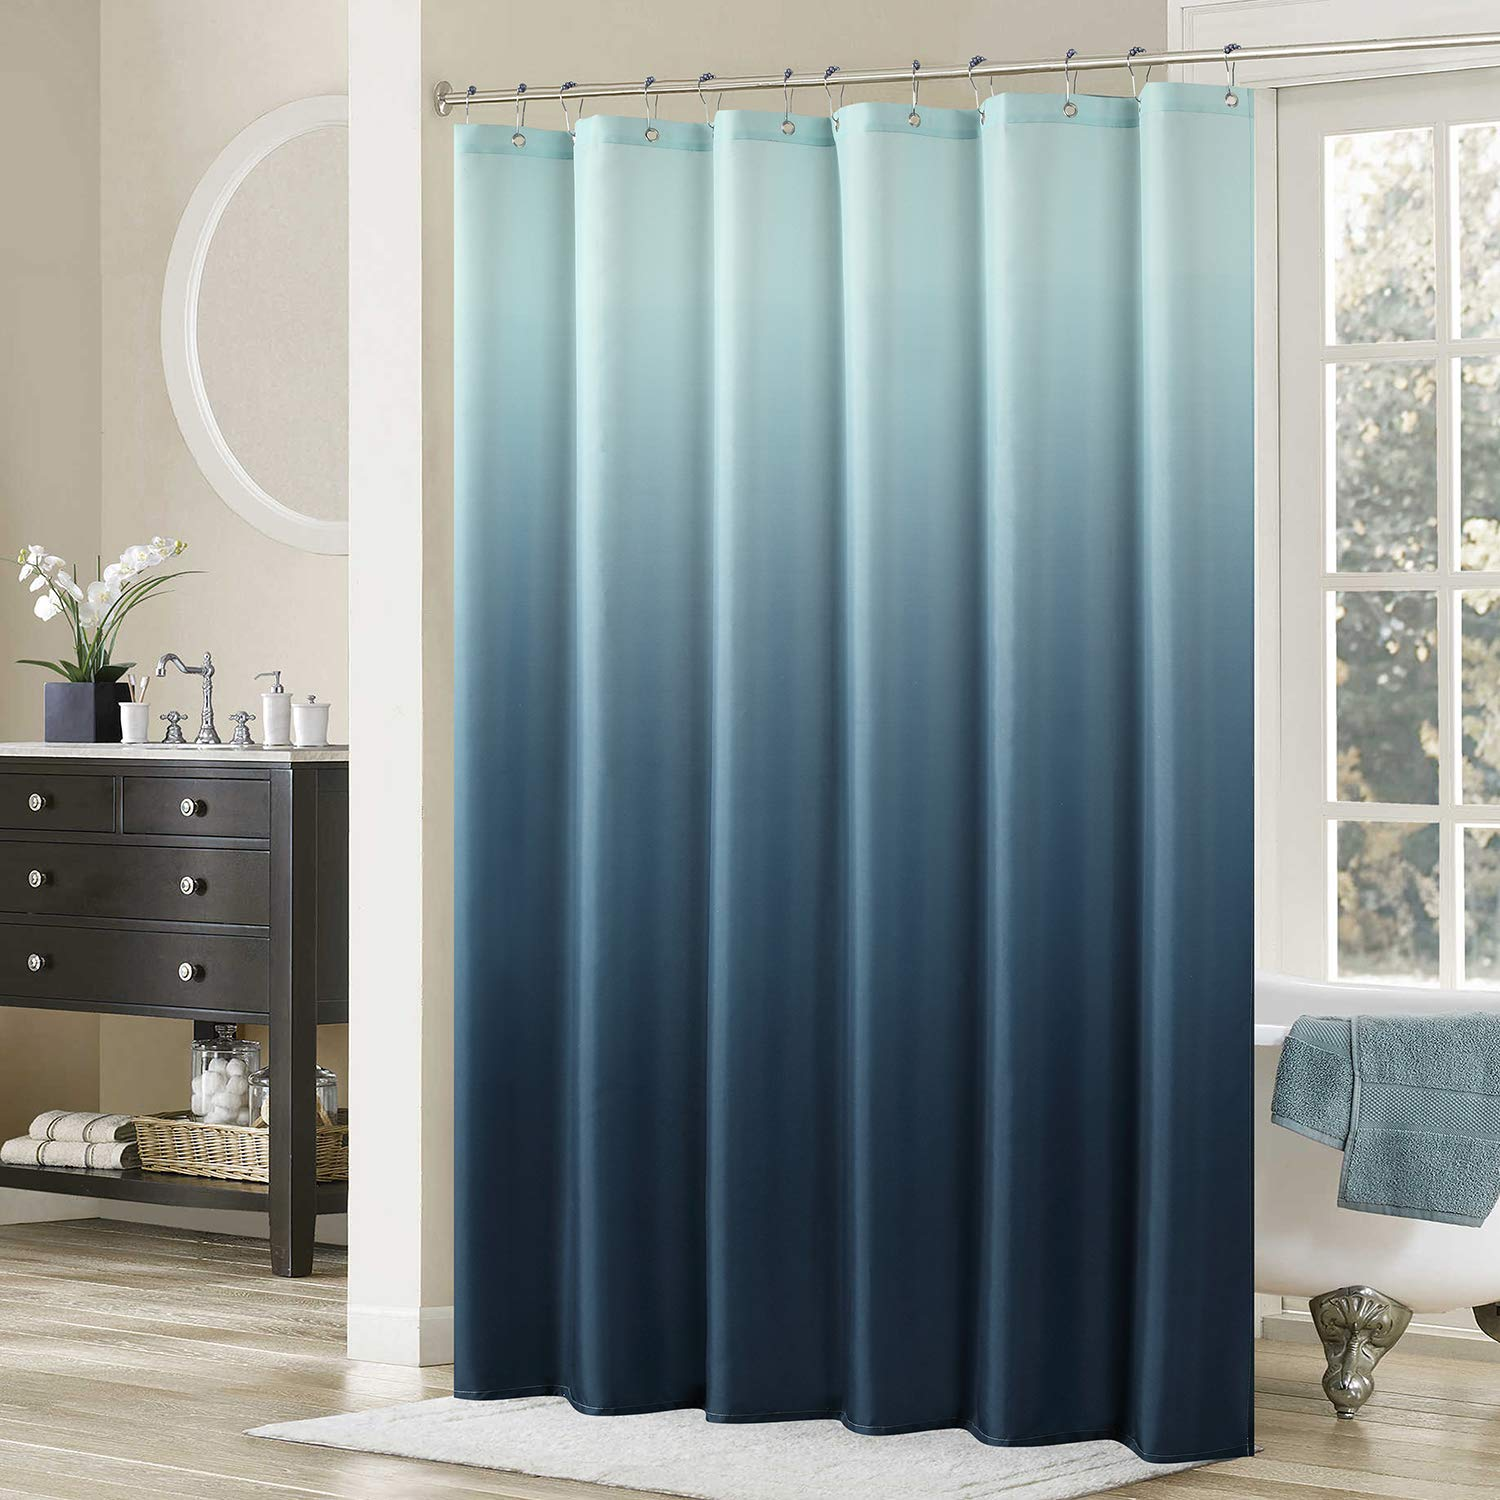 DS BATH Ombre Shower CurtainPopular CurtainMildew Resistant Fabric Curtains For BathroomContemporary Bathroom CurtainsPrint Waterproof